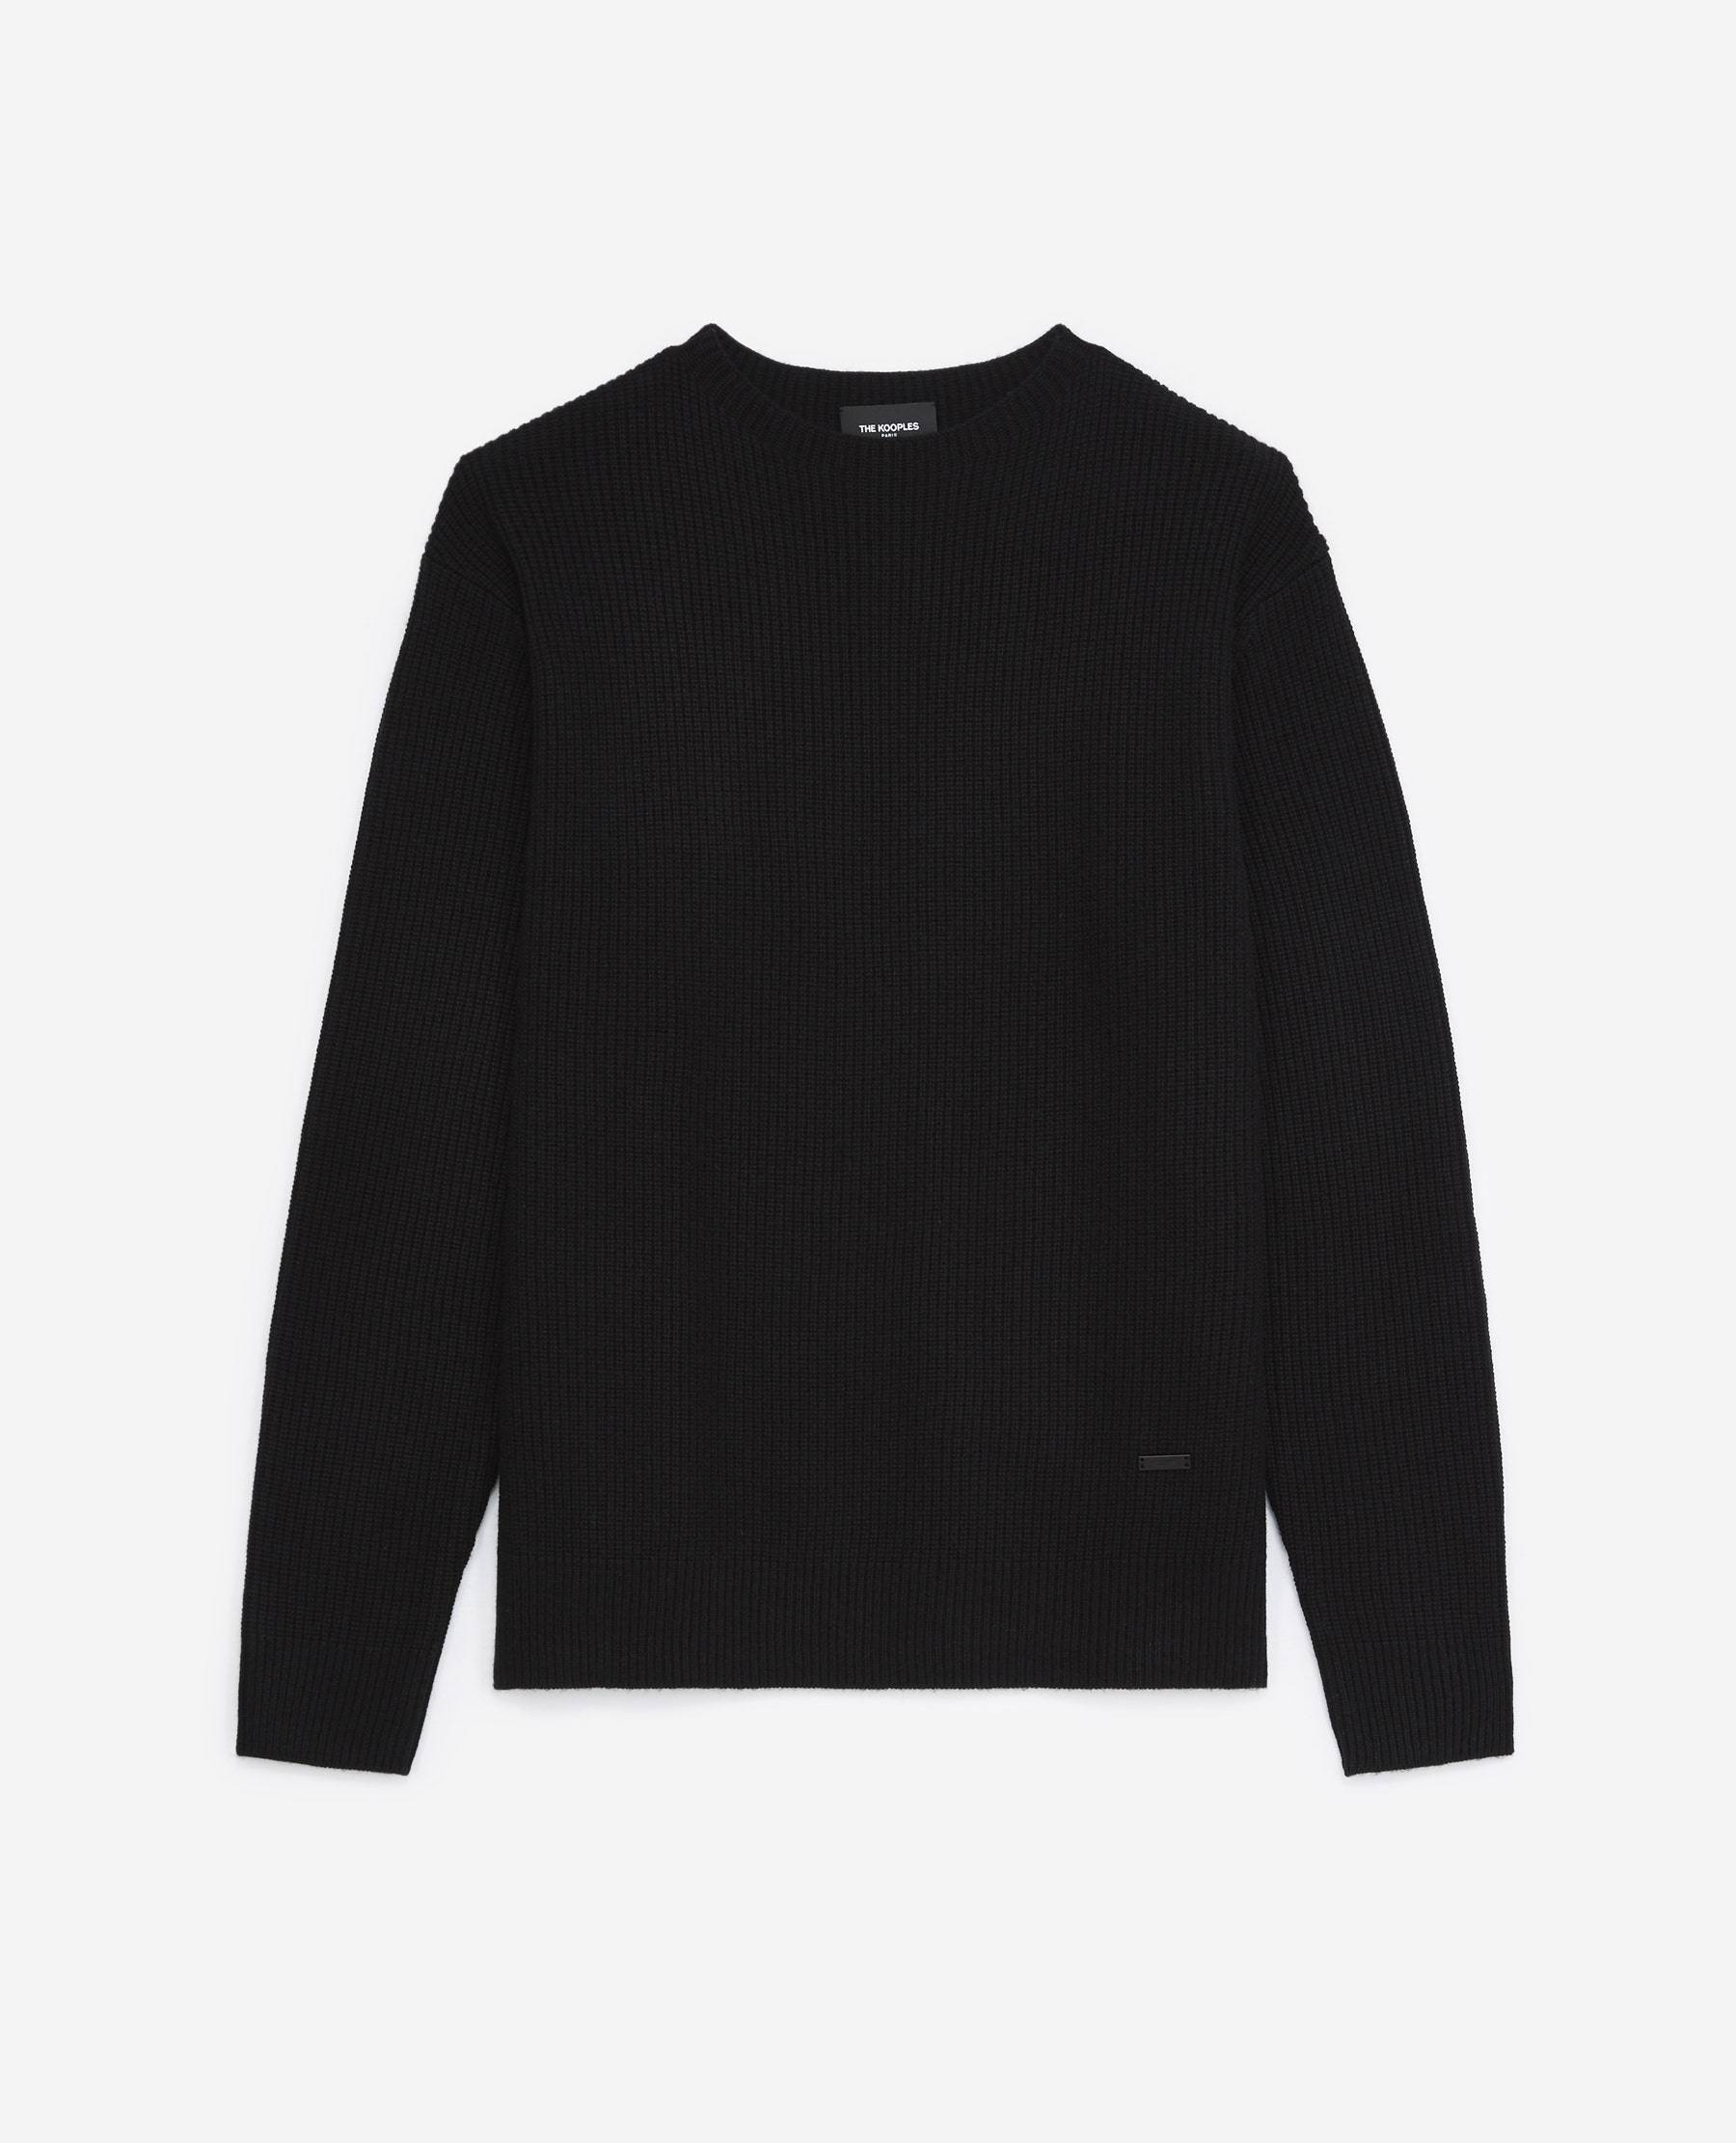 The Kooples - Pull maille noir à col montant - HOMME M